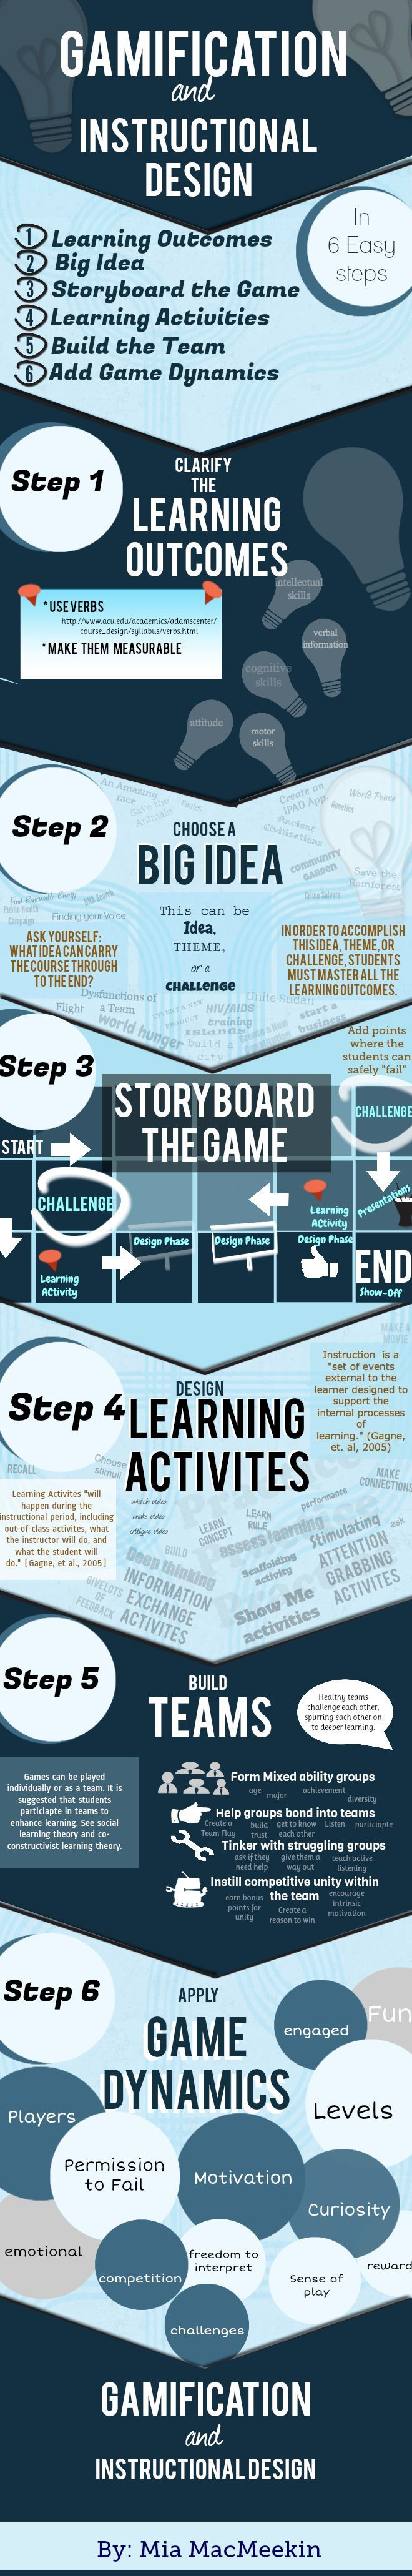 Gamification and Instructional Design Infographic